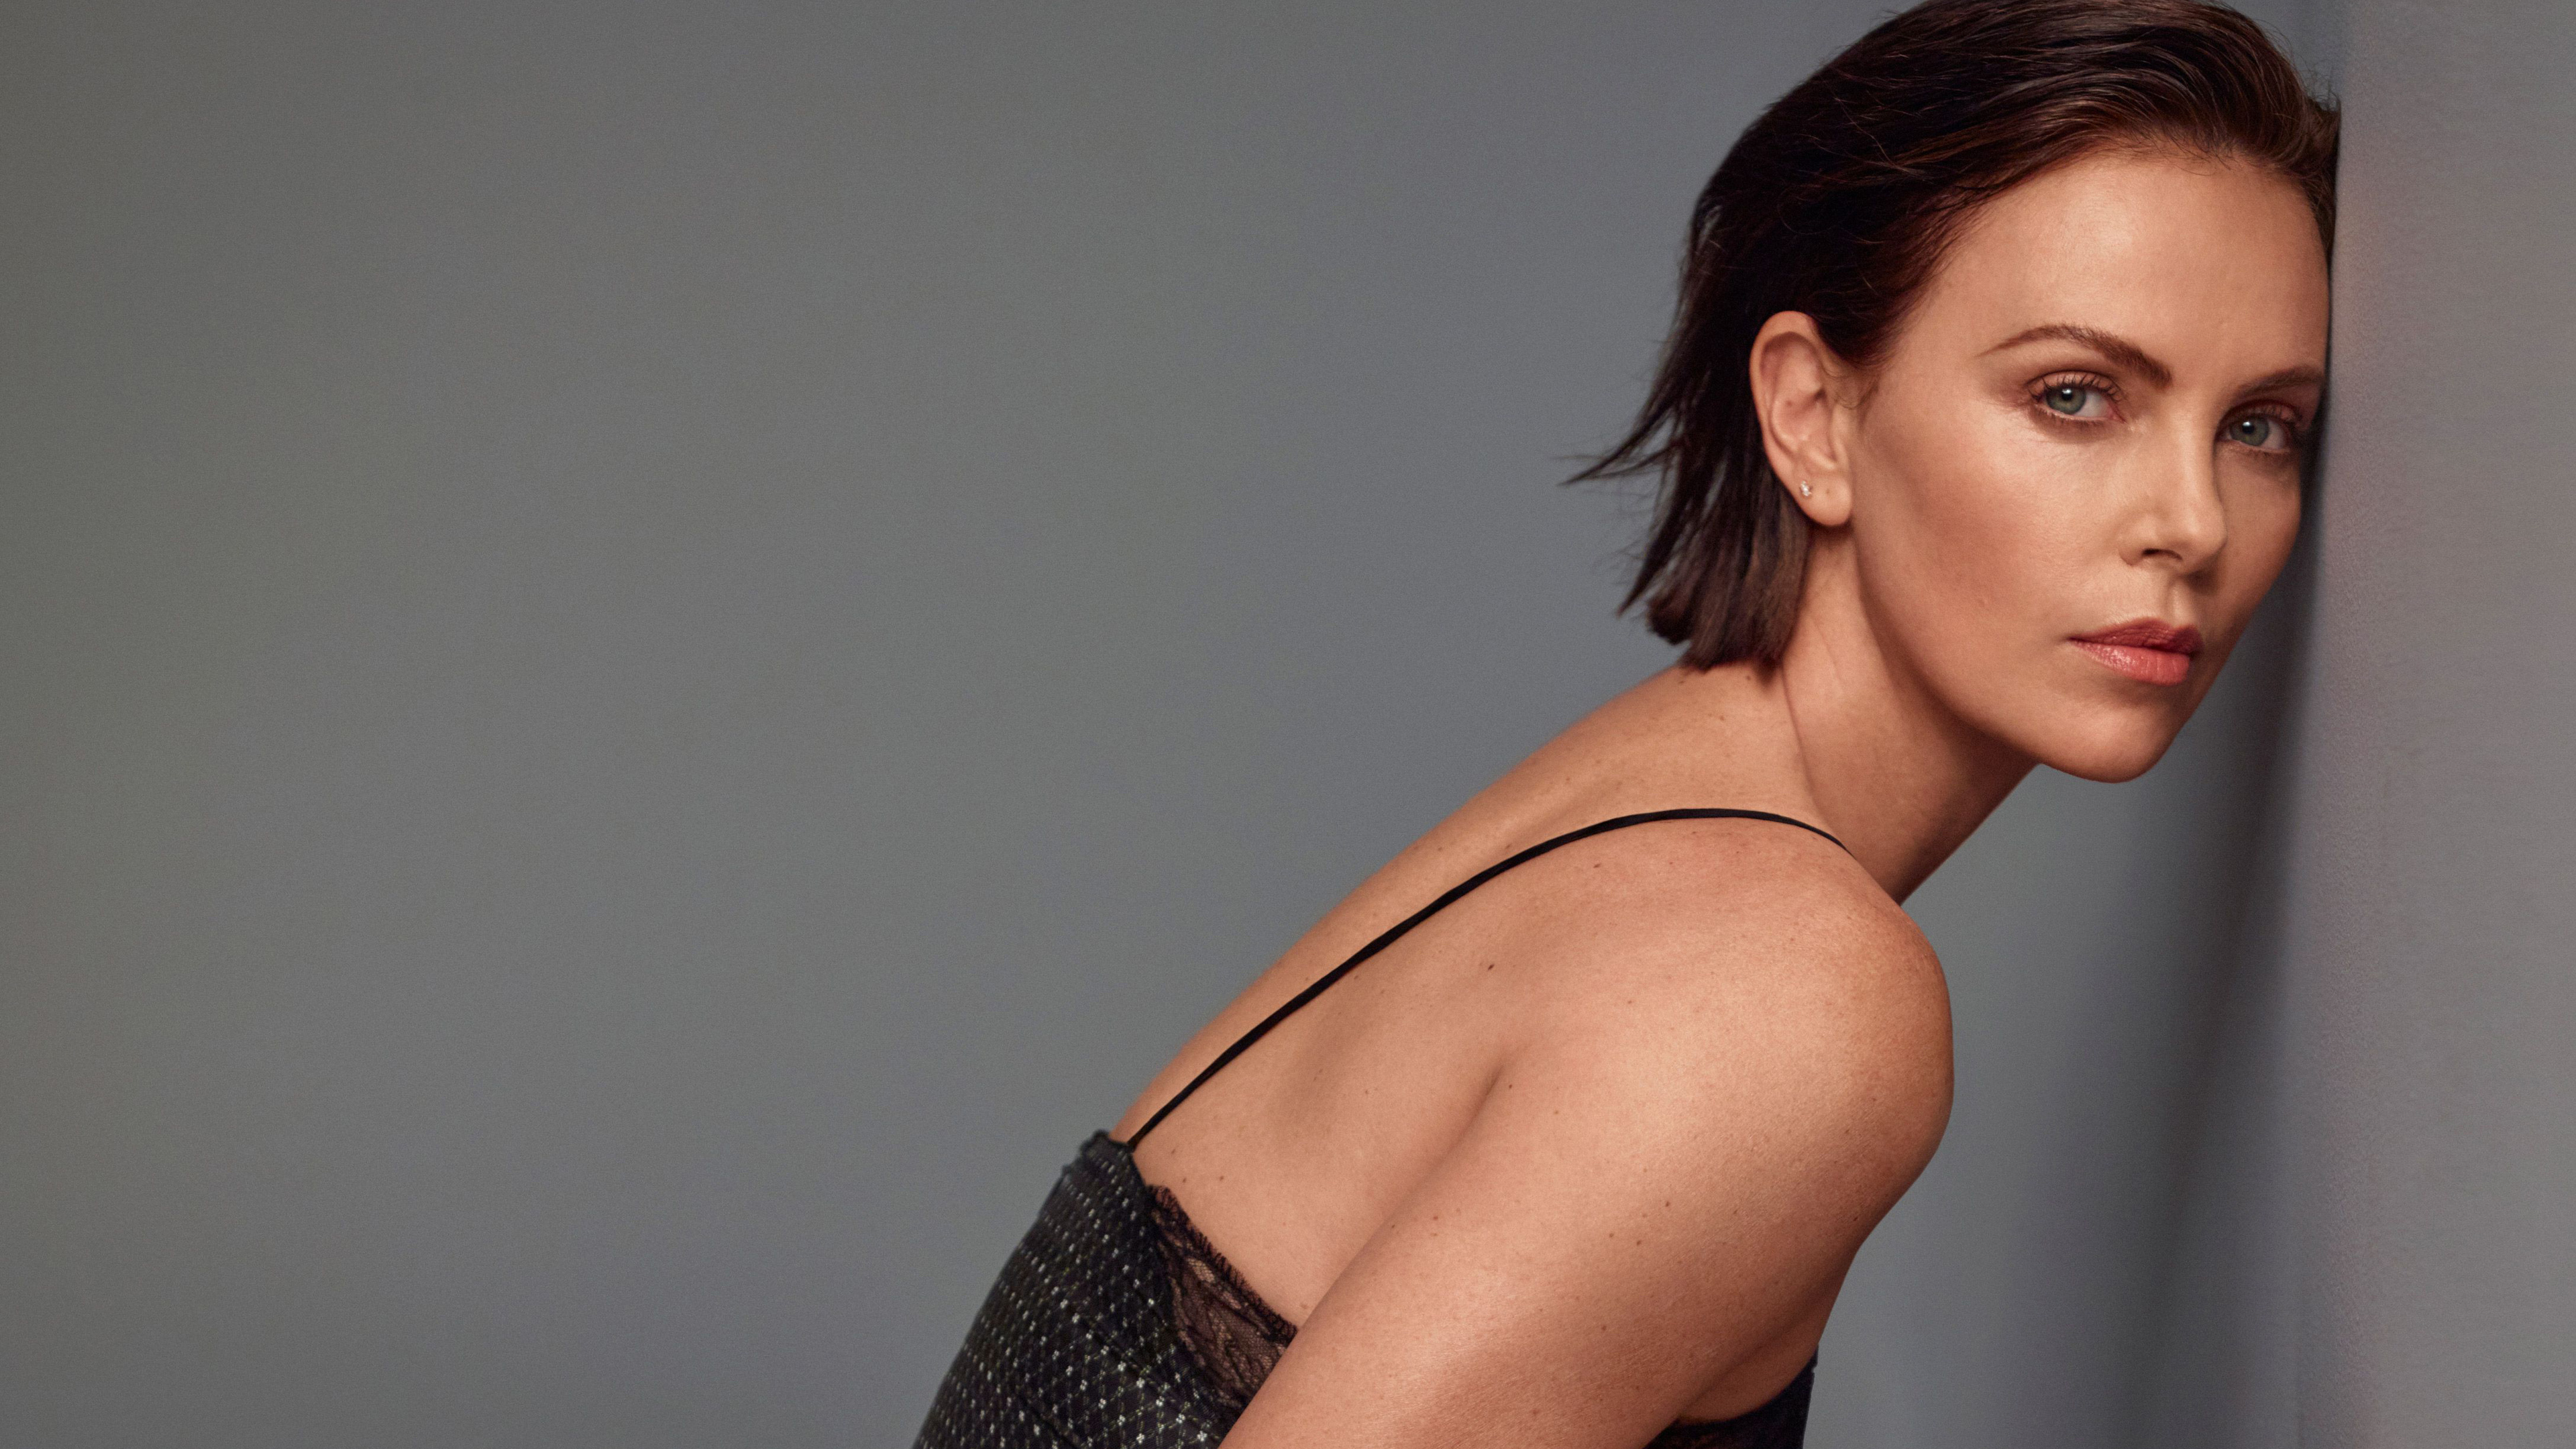 charlize theron maire claire 2019 1558220752 - Charlize Theron Maire Claire 2019 - hd-wallpapers, girls wallpapers, charlize theron wallpapers, celebrities wallpapers, 4k-wallpapers